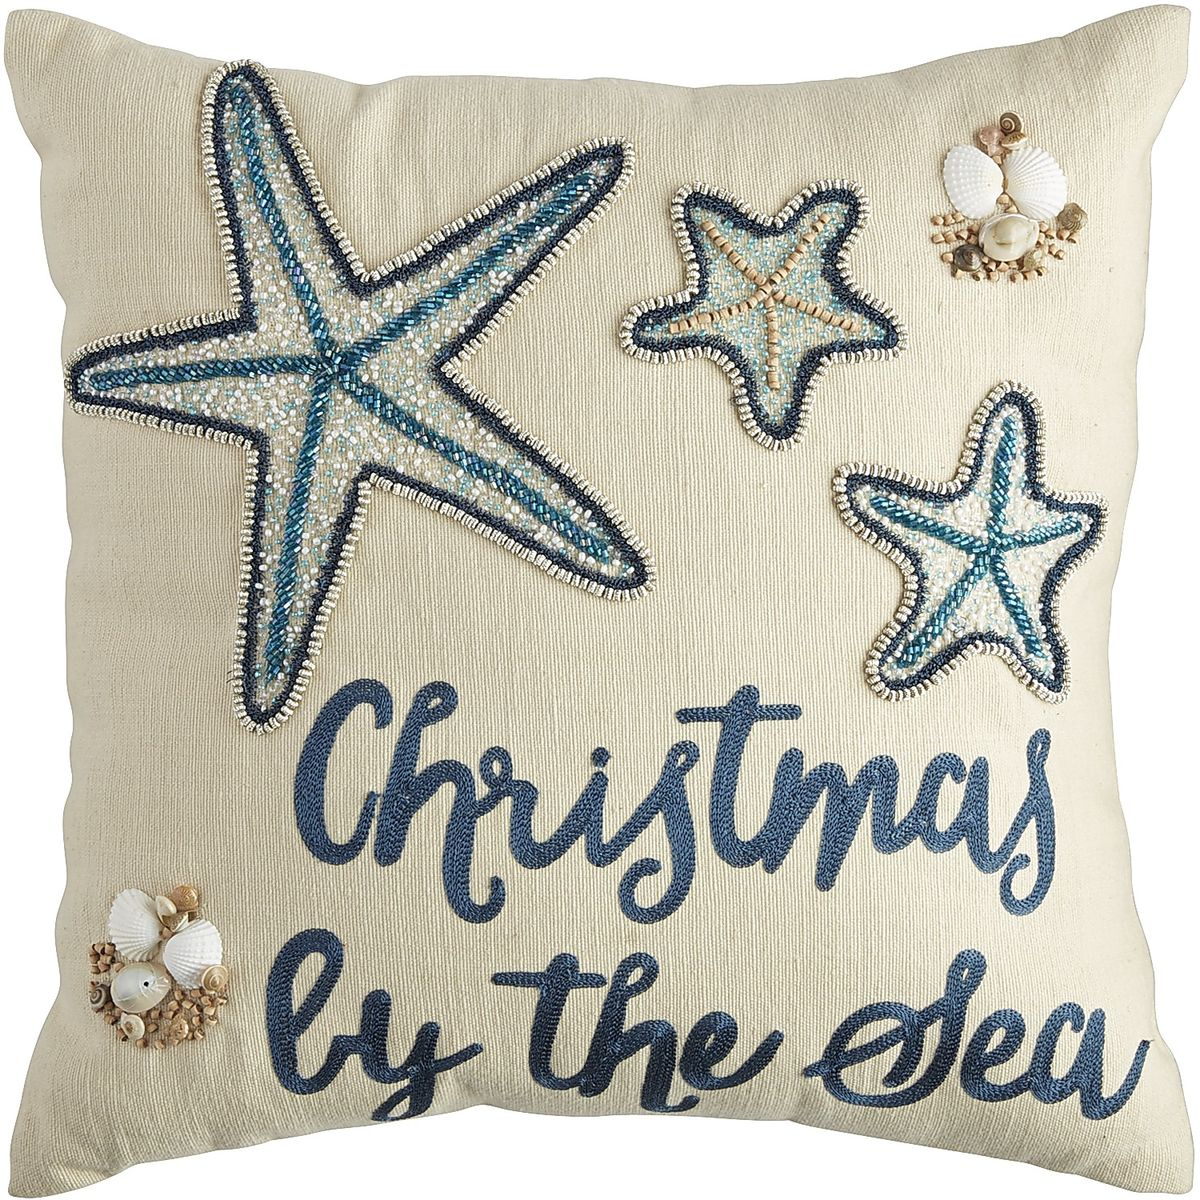 Coastal Christmas by the Sea Pillow